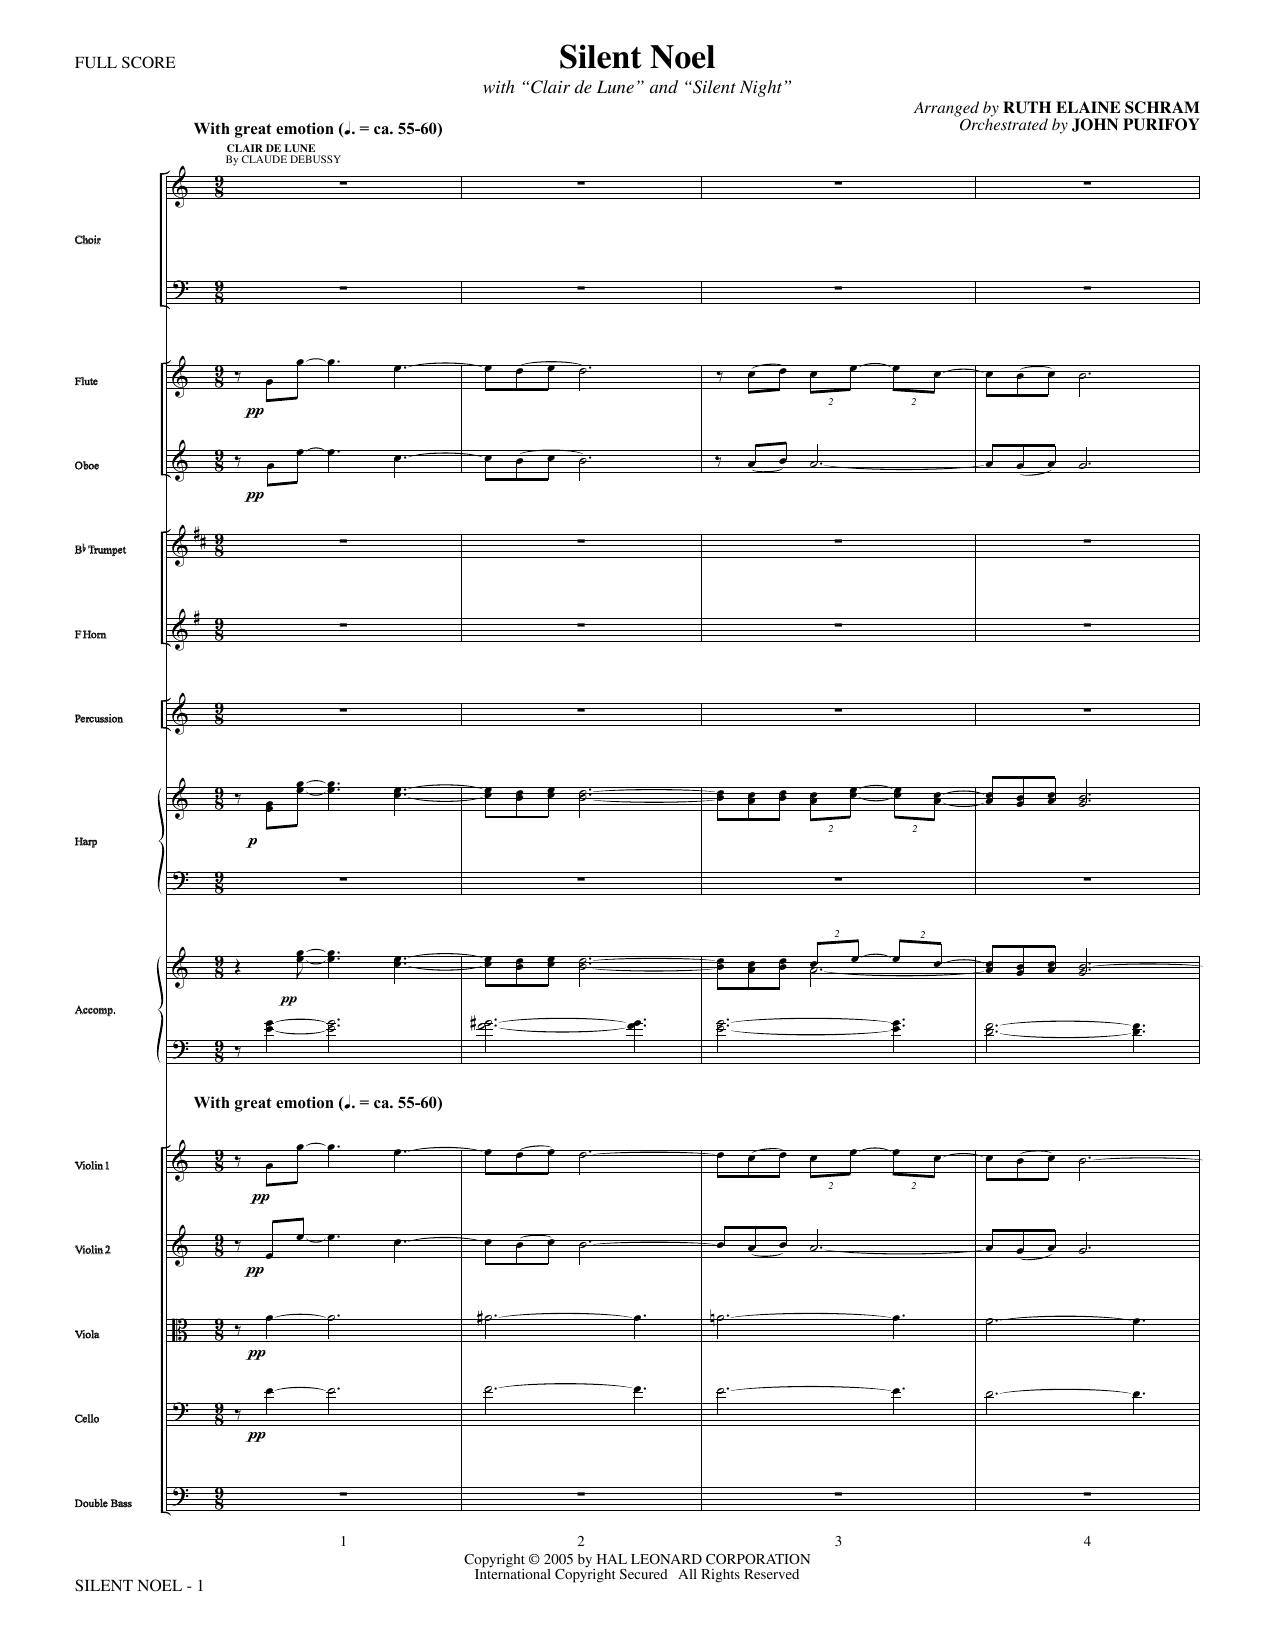 Silent Noel (COMPLETE) sheet music for orchestra/band by Ruth Elaine Schram